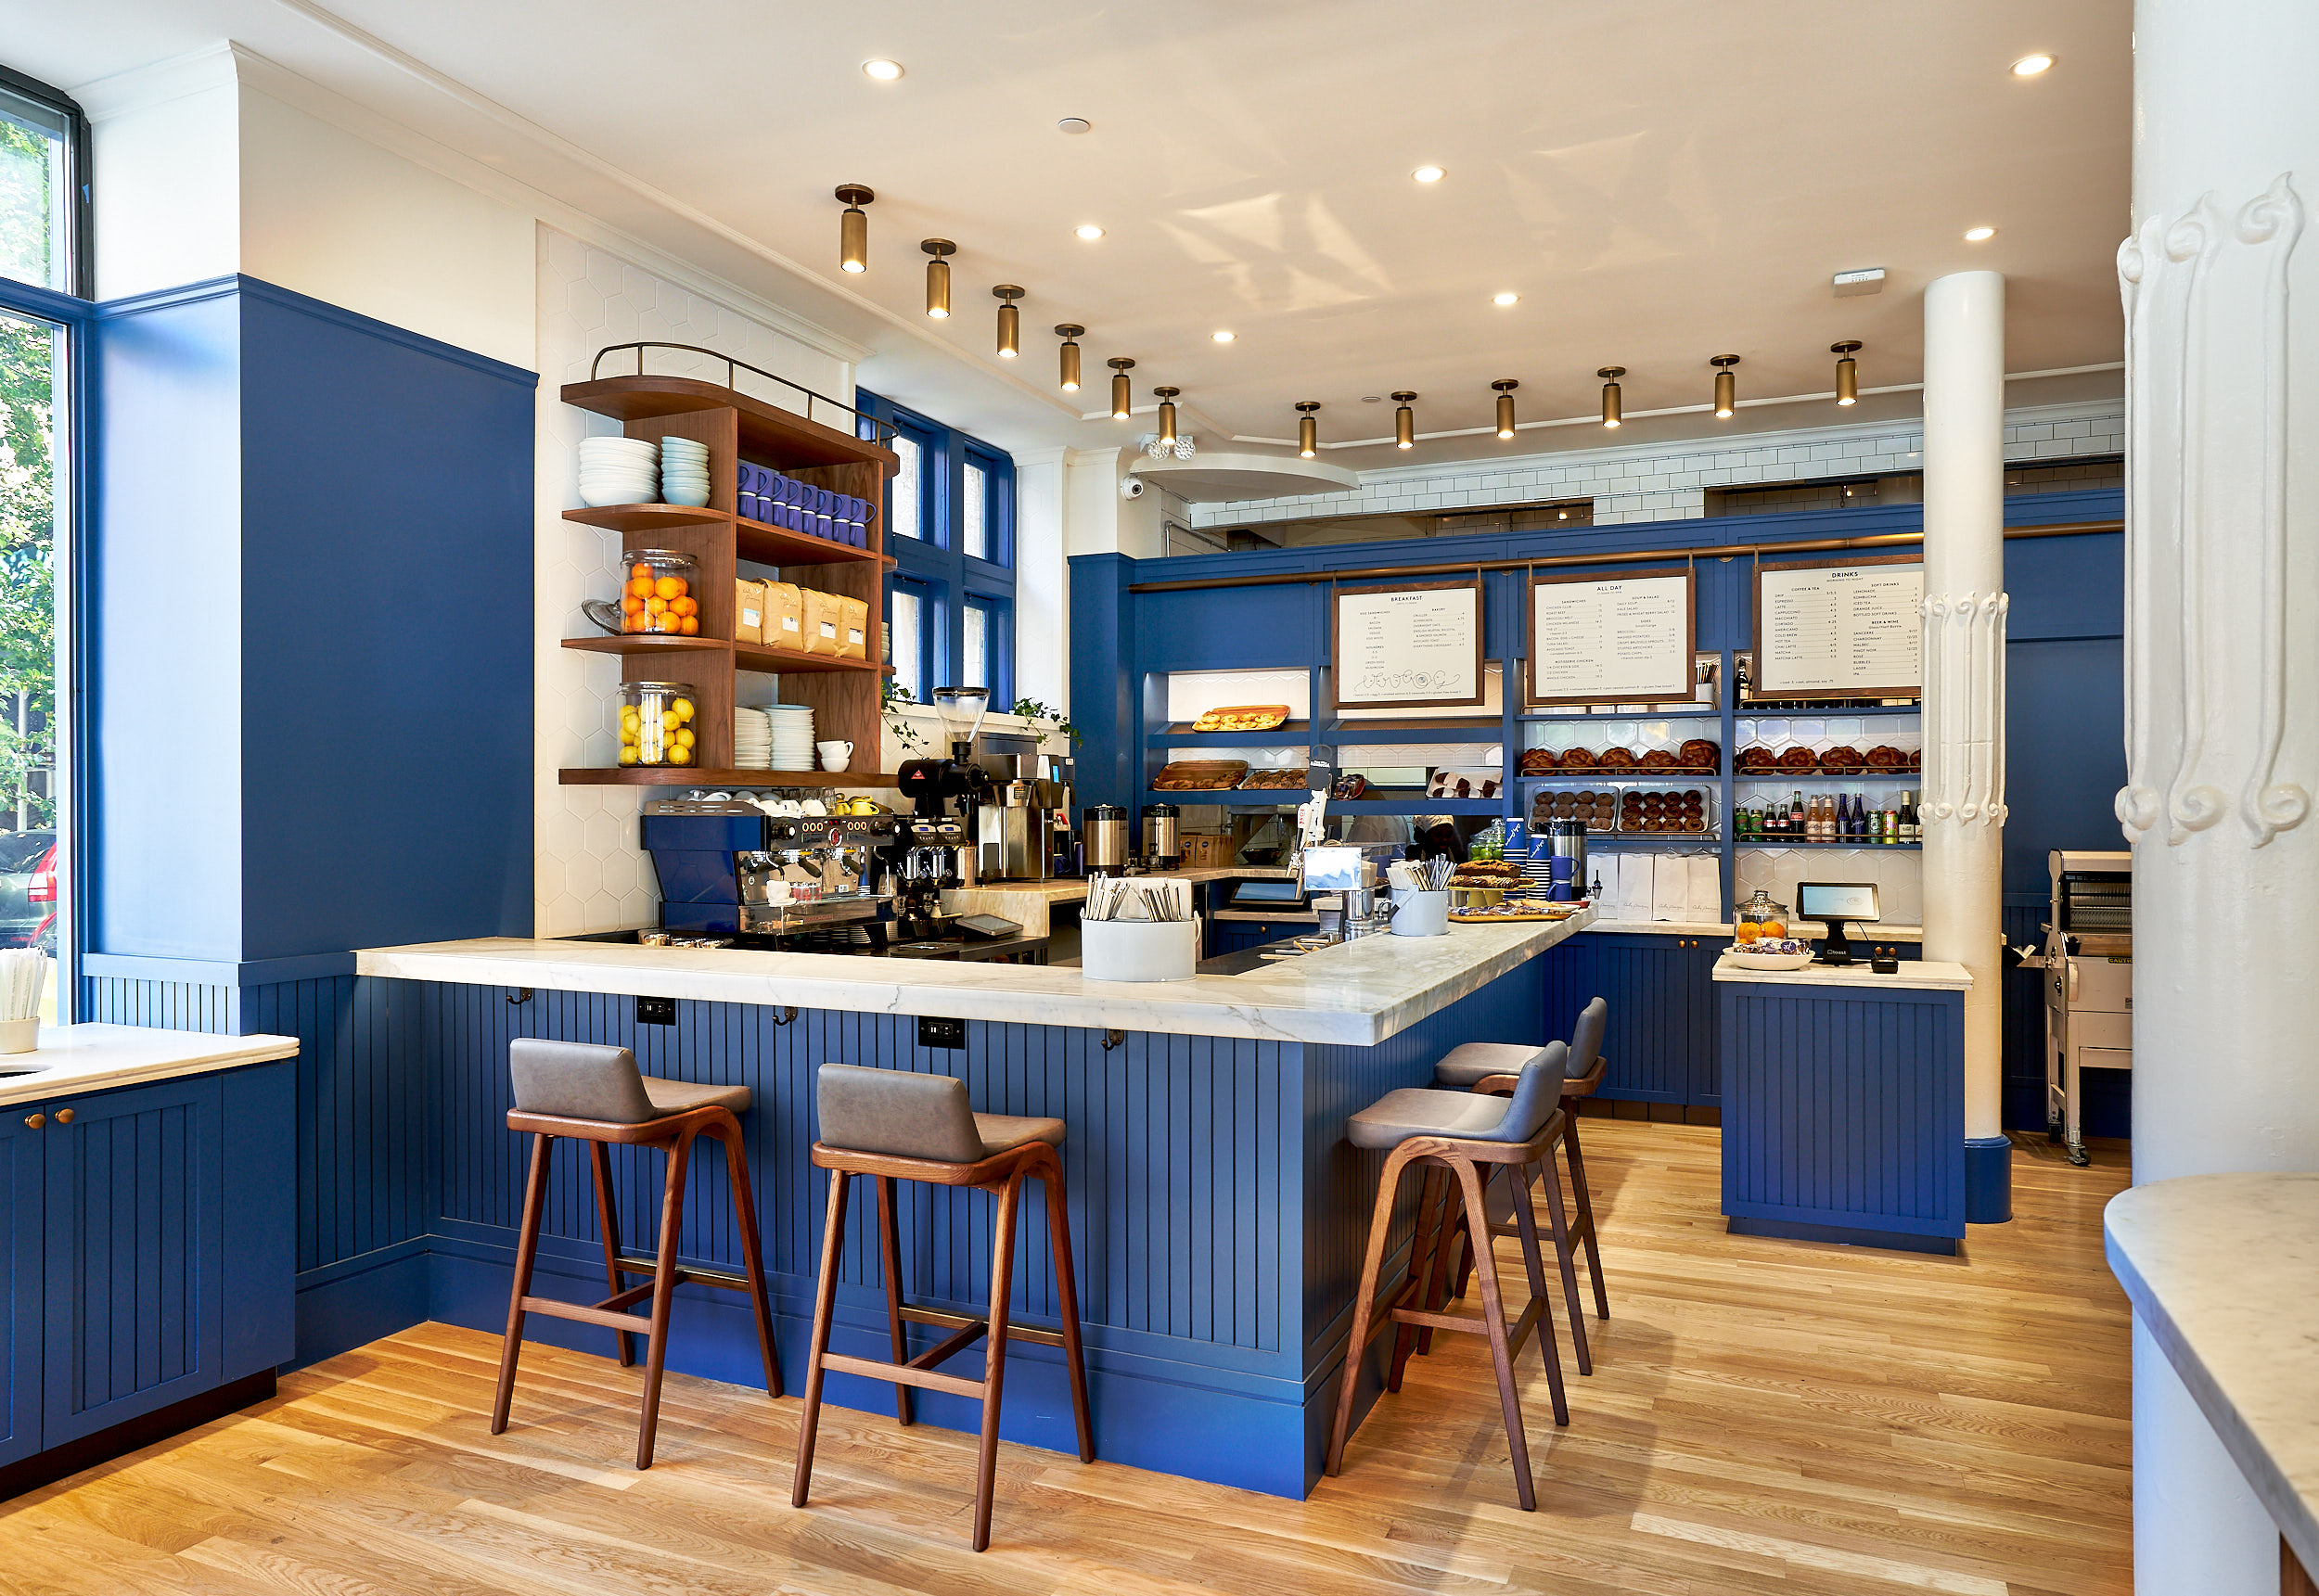 The blue, white, and wood interior of a Daily Provisions cafe